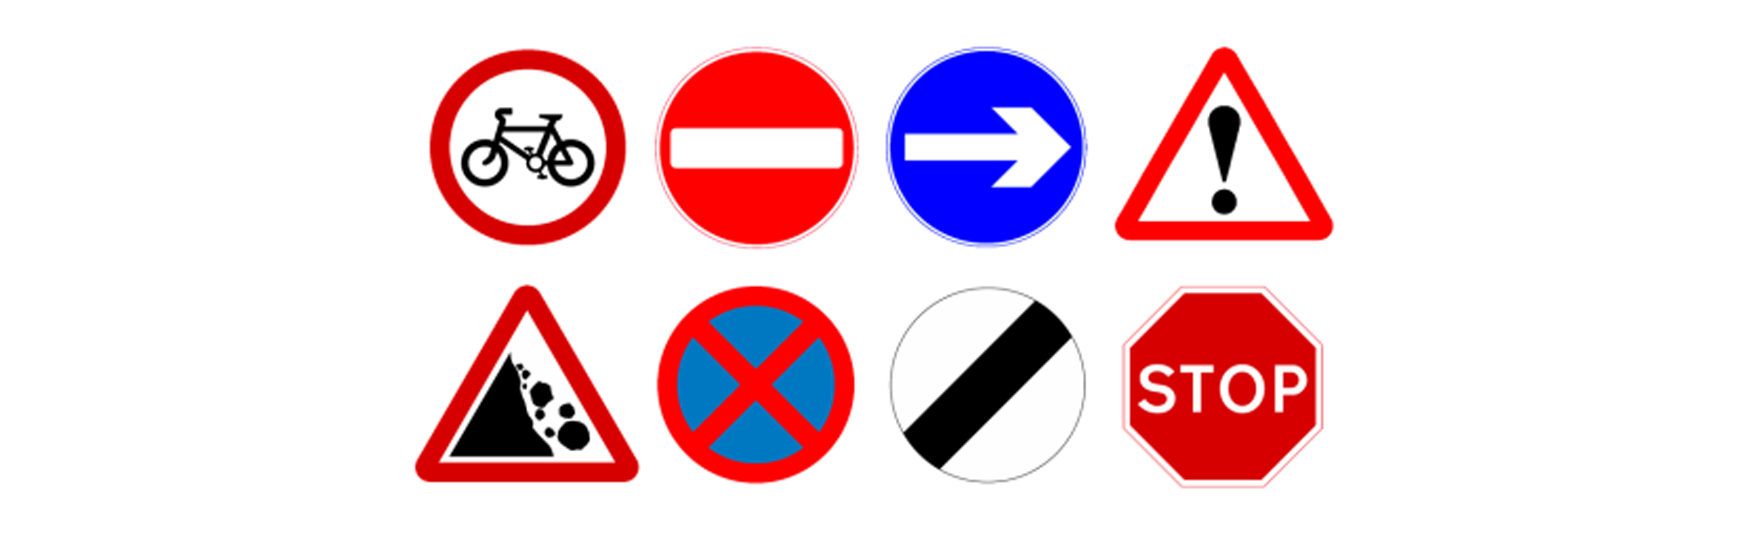 50th anniversary of the The British Road Sign